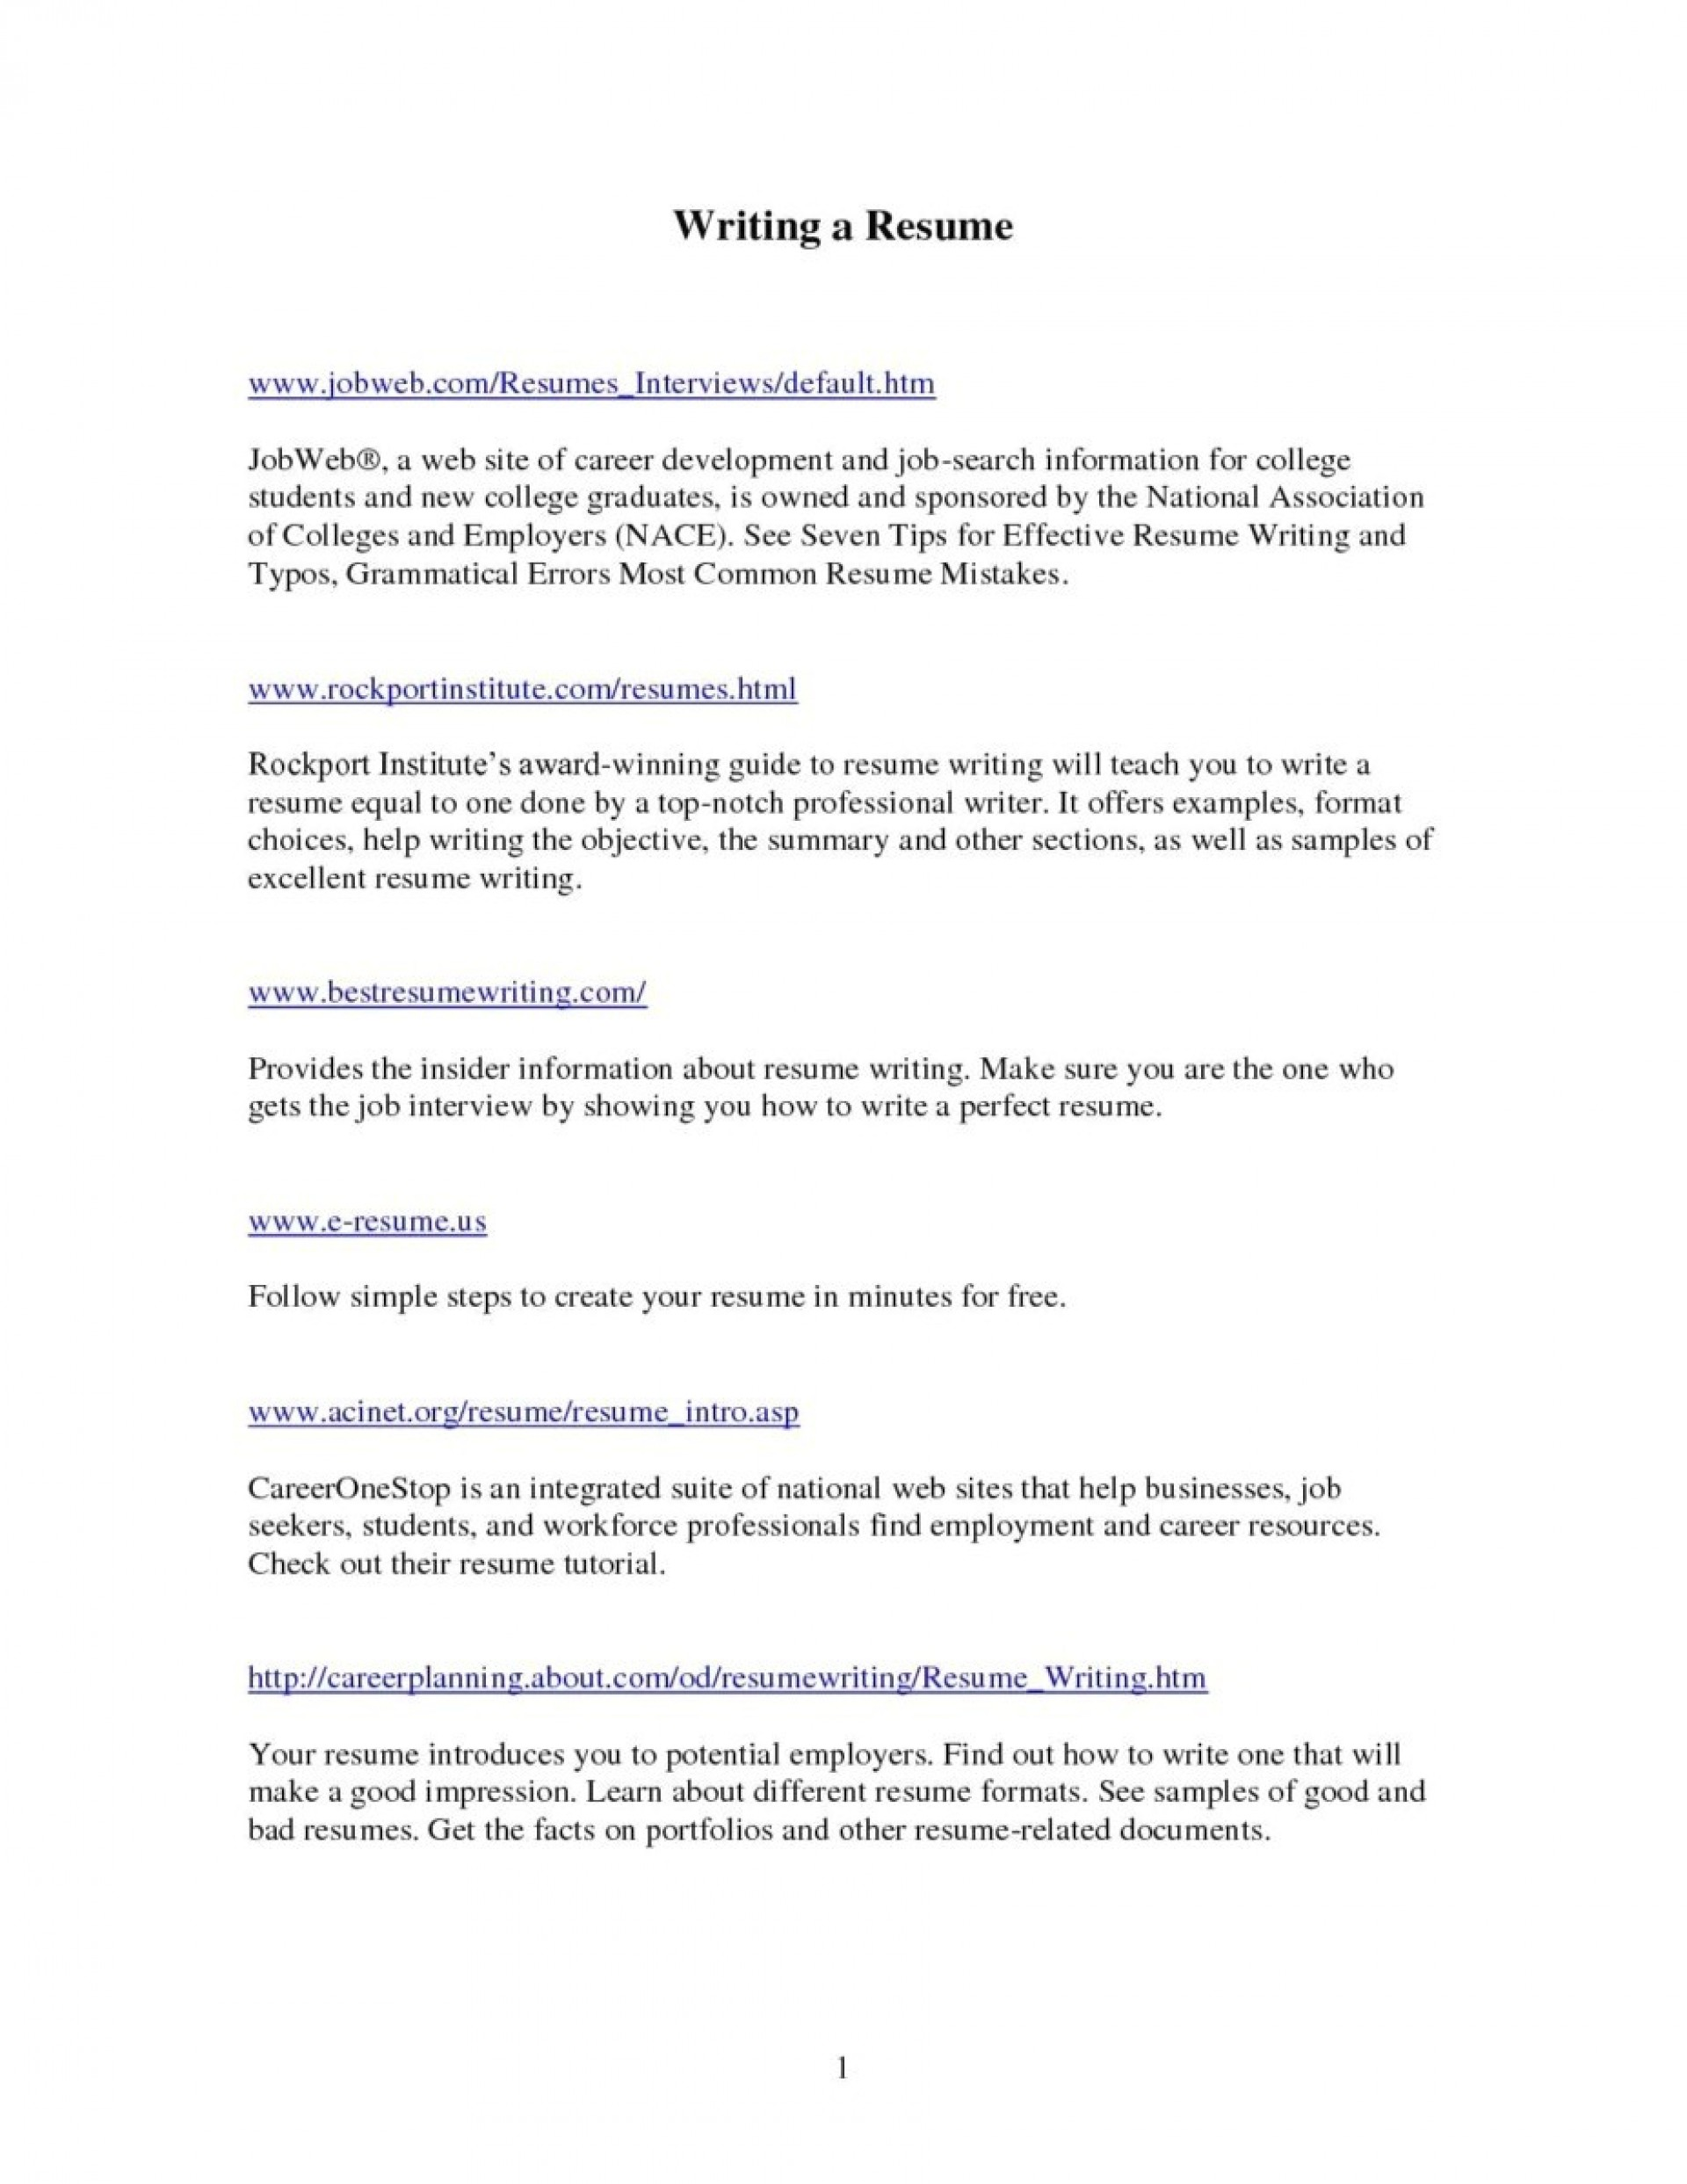 010 Research Paper Resume Writing Service Reviews Format Best